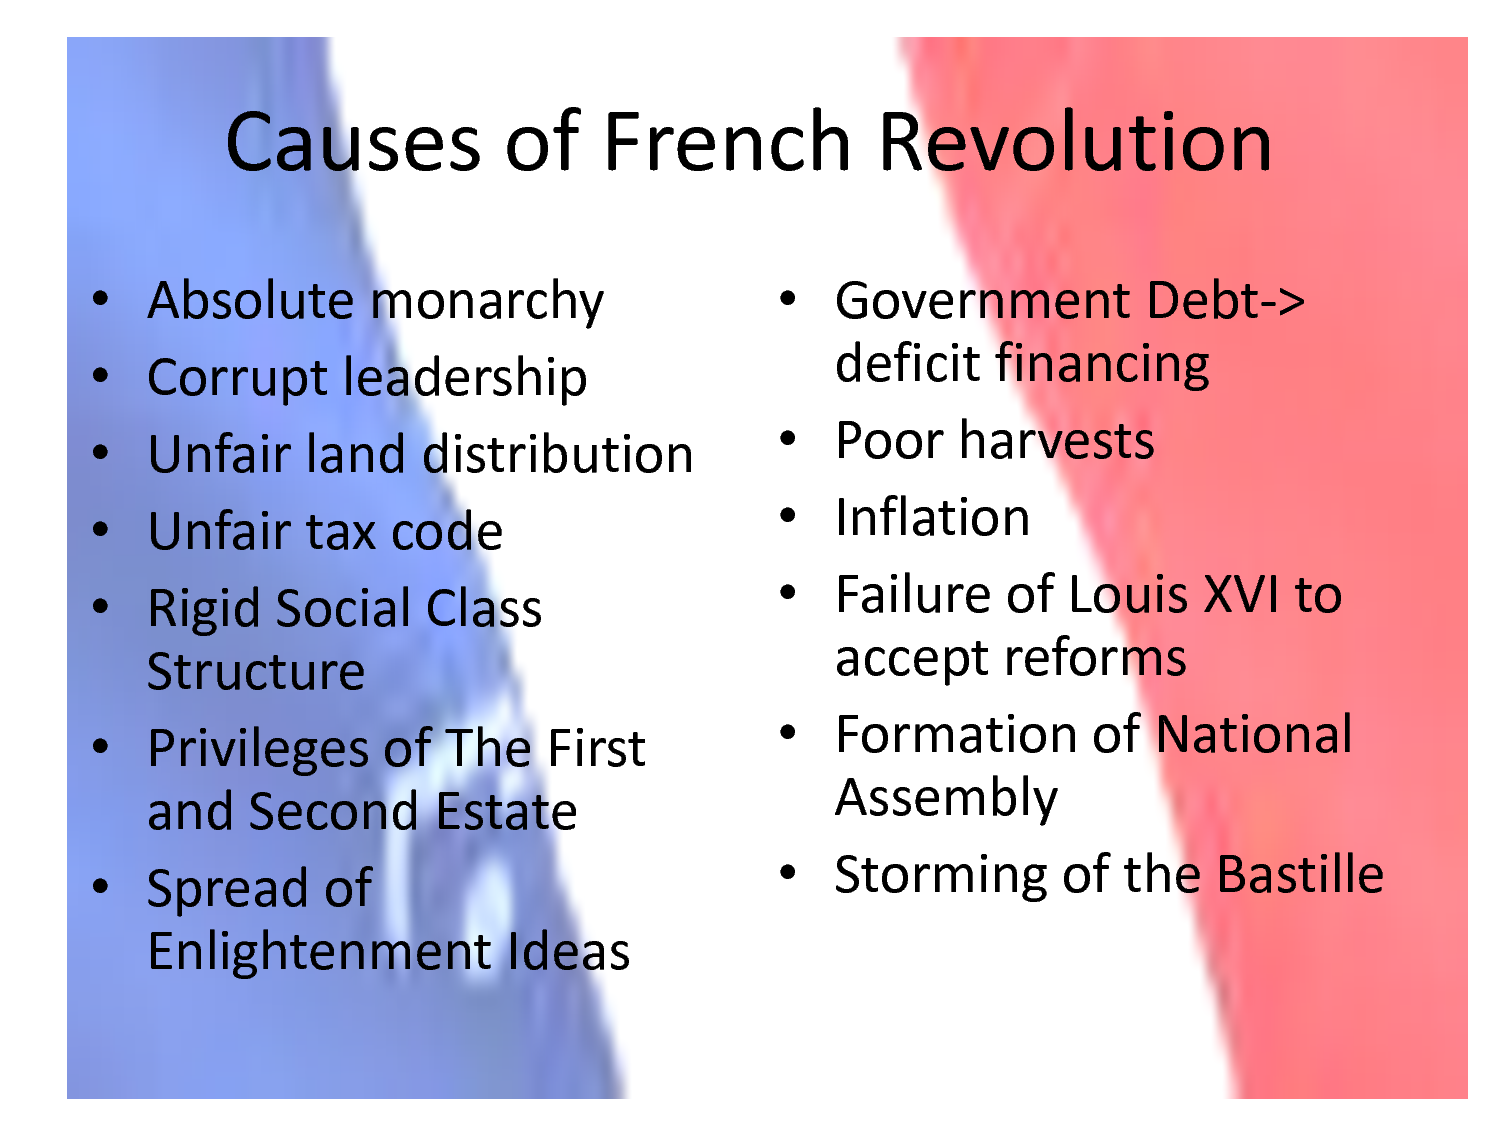 an analysis of the primary causes of social and political upheaval in the french revolution The causes of the french revolution france was in a state of unrest, and needed change the first and second estates were the controlling class and change sat gre  when interpreting the primary cause of a revolution we instantly jump to the conclusion that of course, the rebels are to blame  there were many causes that the french revolution had occurred political, social.